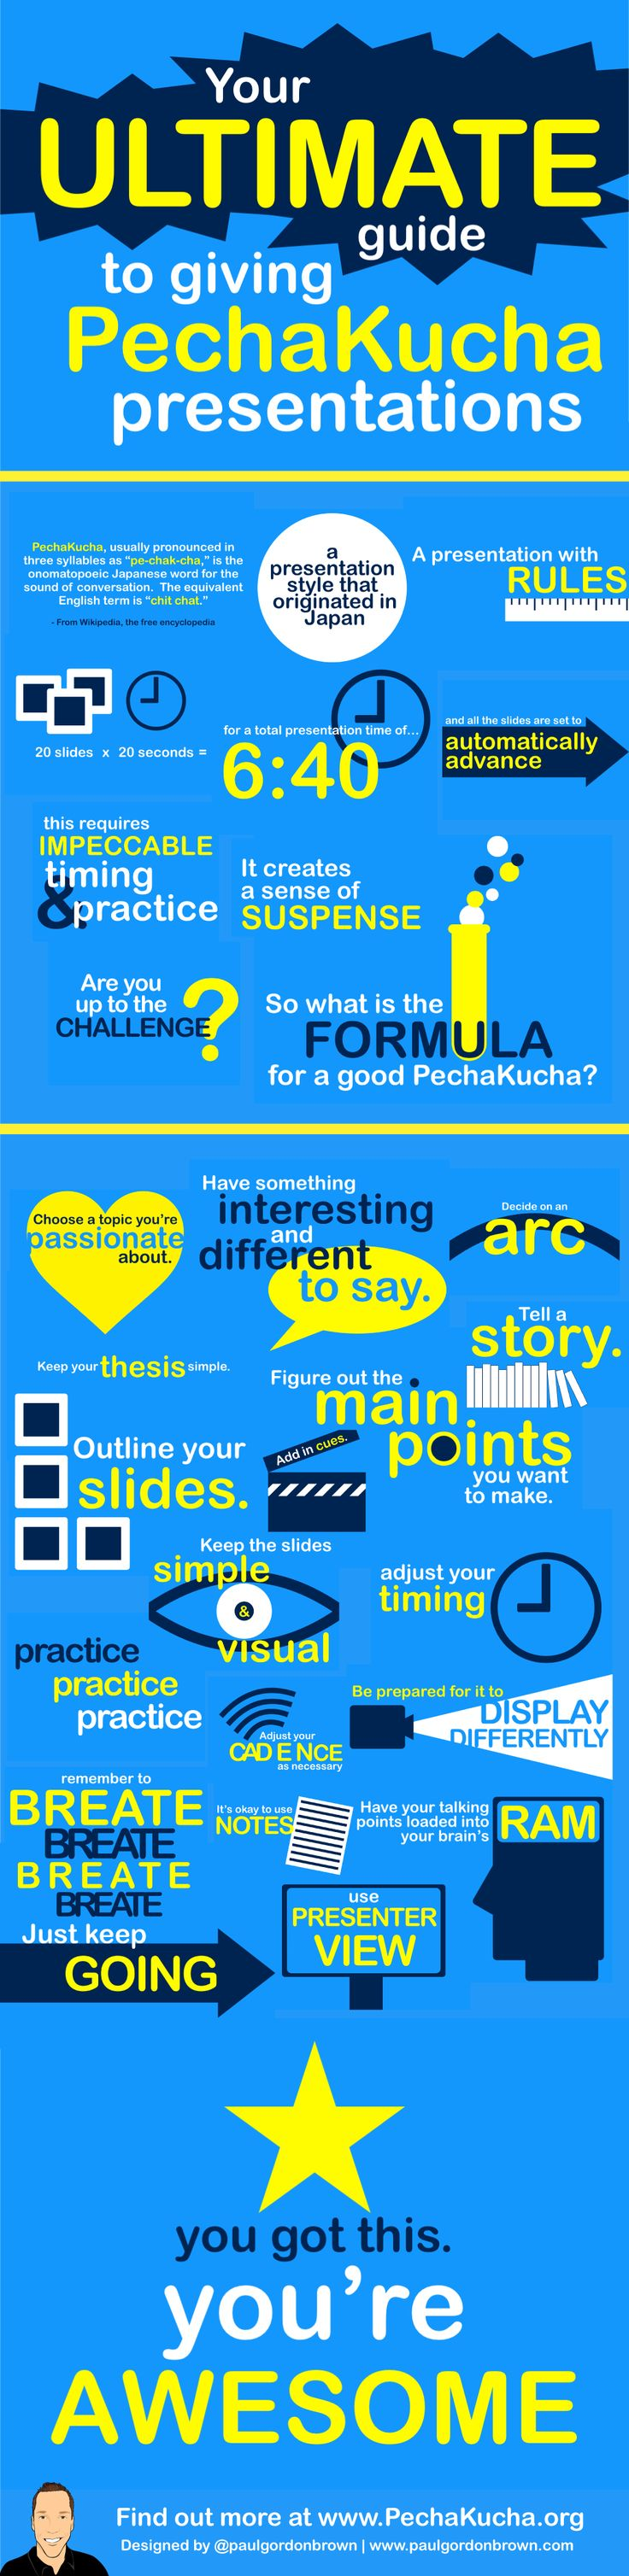 best images about pecha kucha presentations this has become a popular part of your ultimate guide to giving pechakucha presentations via paulgordonbrown